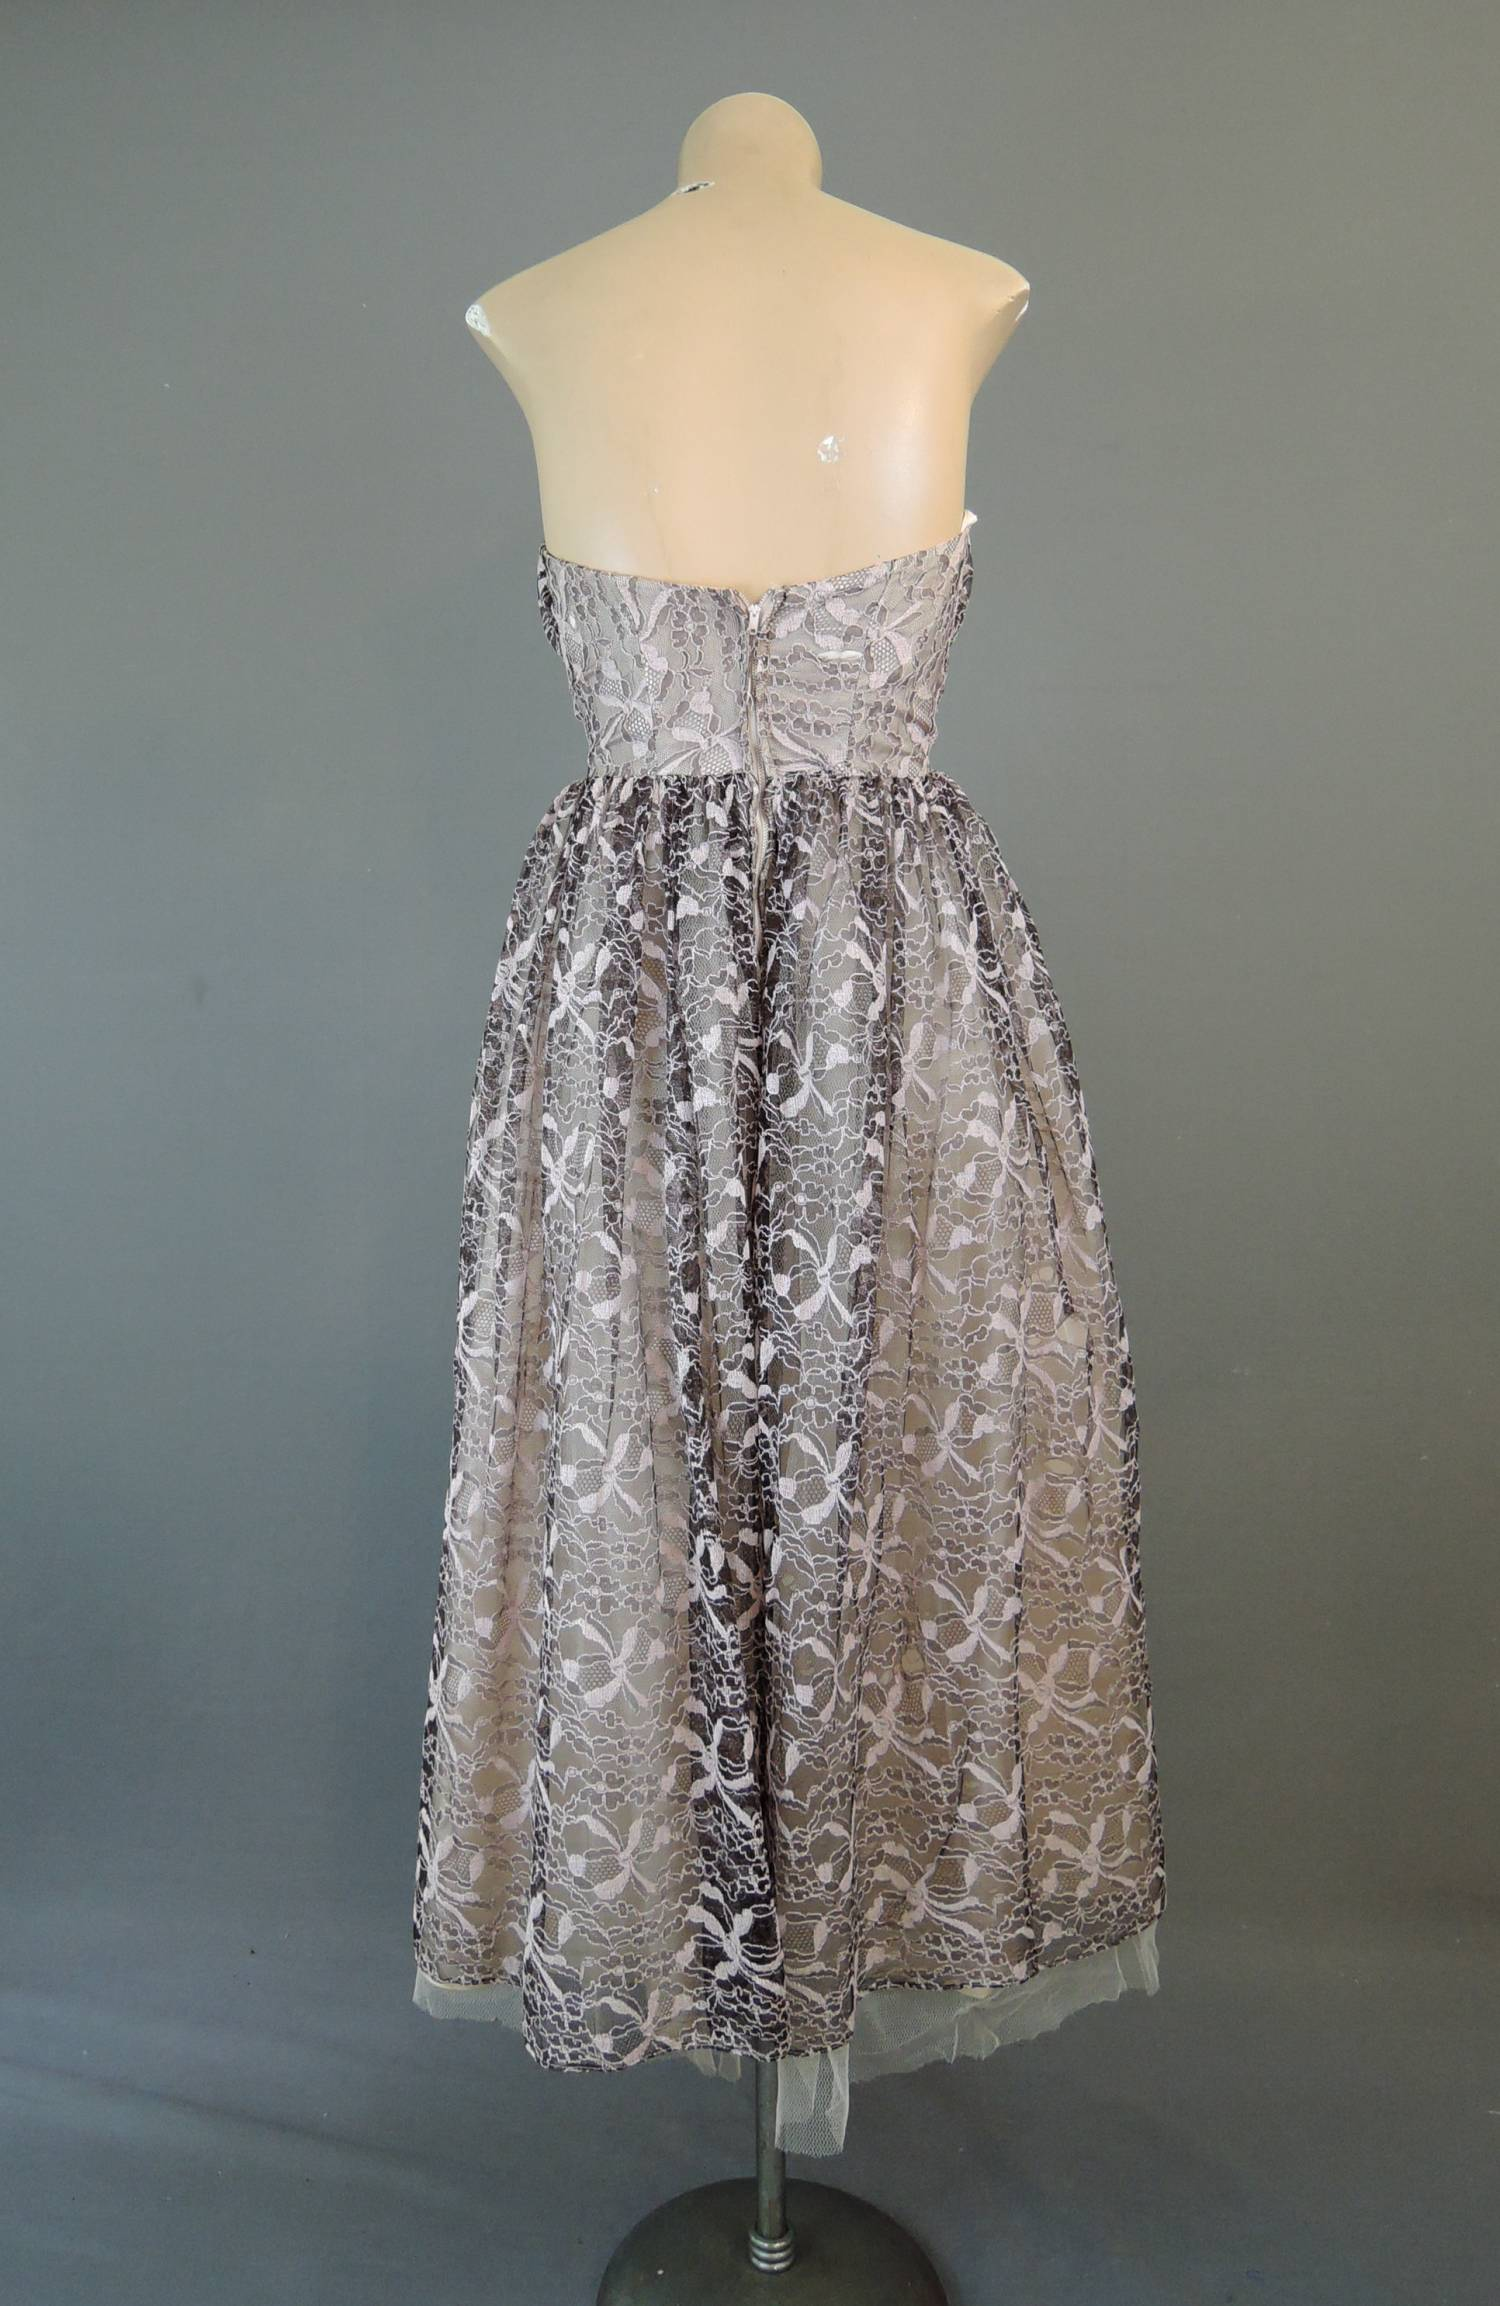 Vintage 1950s Lace Strapless Dress, fits 32 inch bust, Black/Brown & Pink Lace